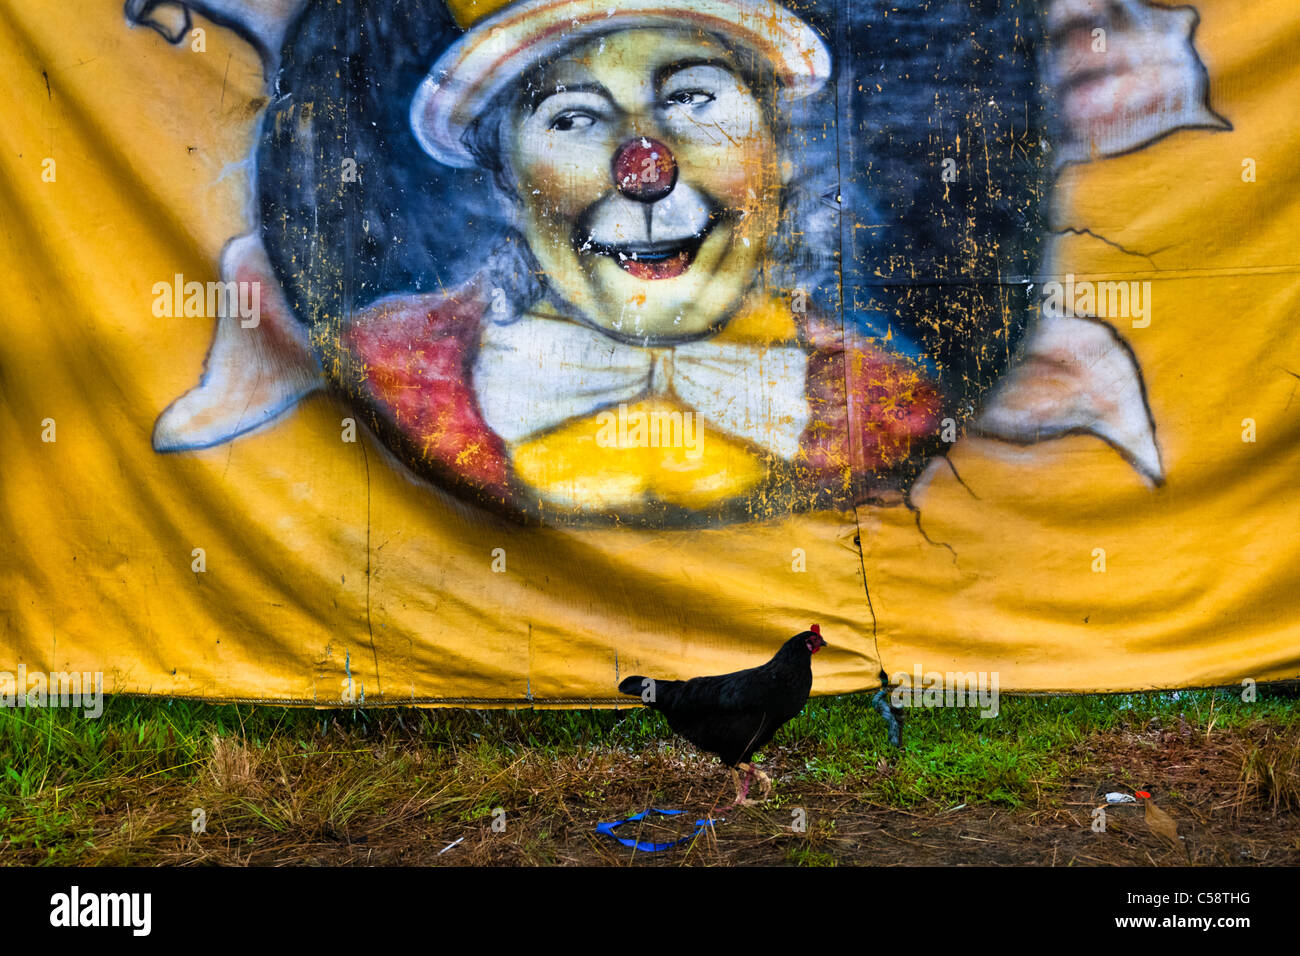 A clown picture painted on a tent of the Circo Anny, a family run circus wandering the Amazon region of Ecuador. - Stock Image